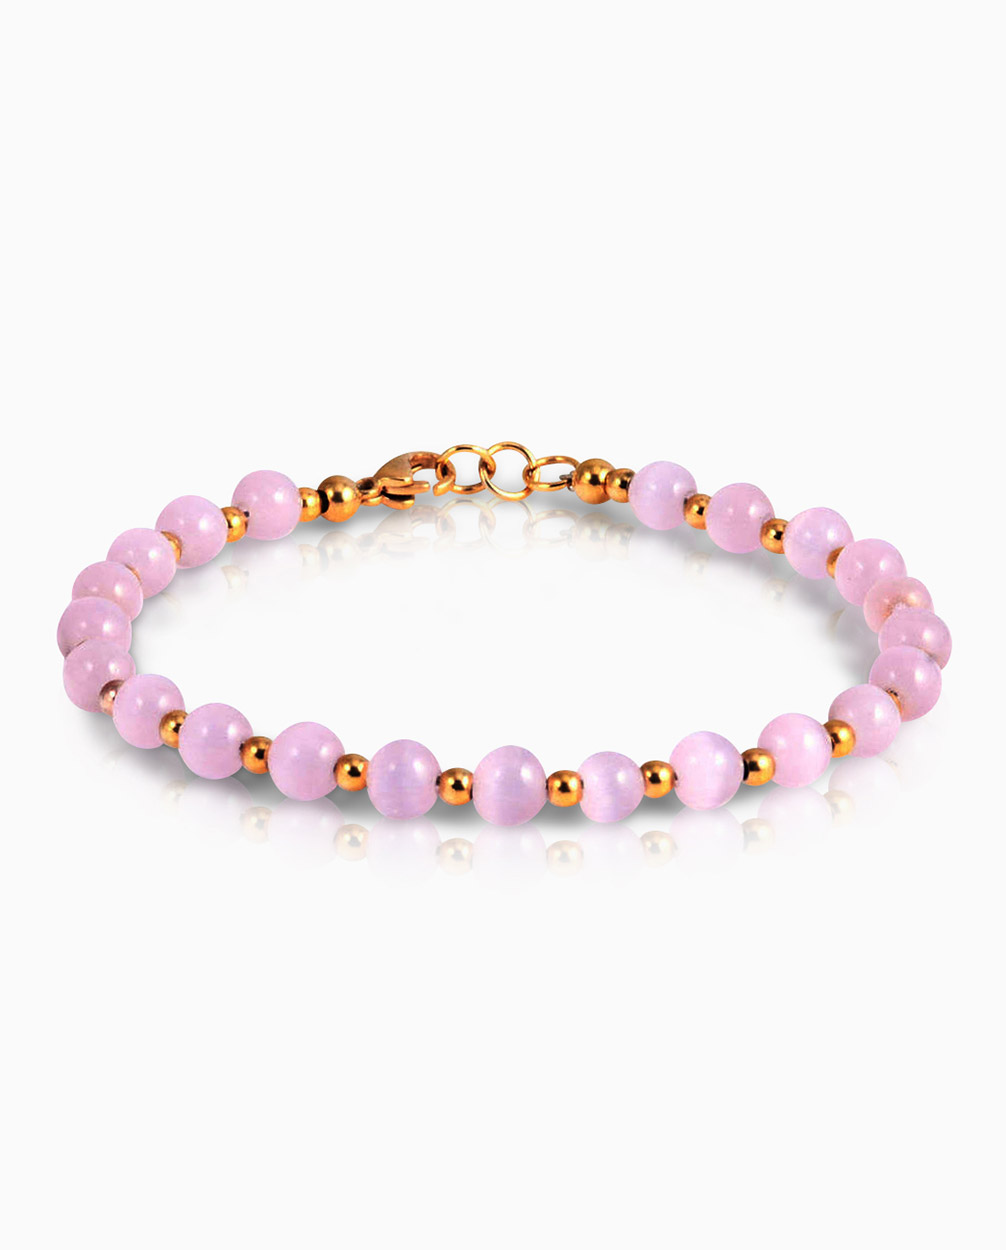 Pink-Stone-Bead-Bracelet-For-Women